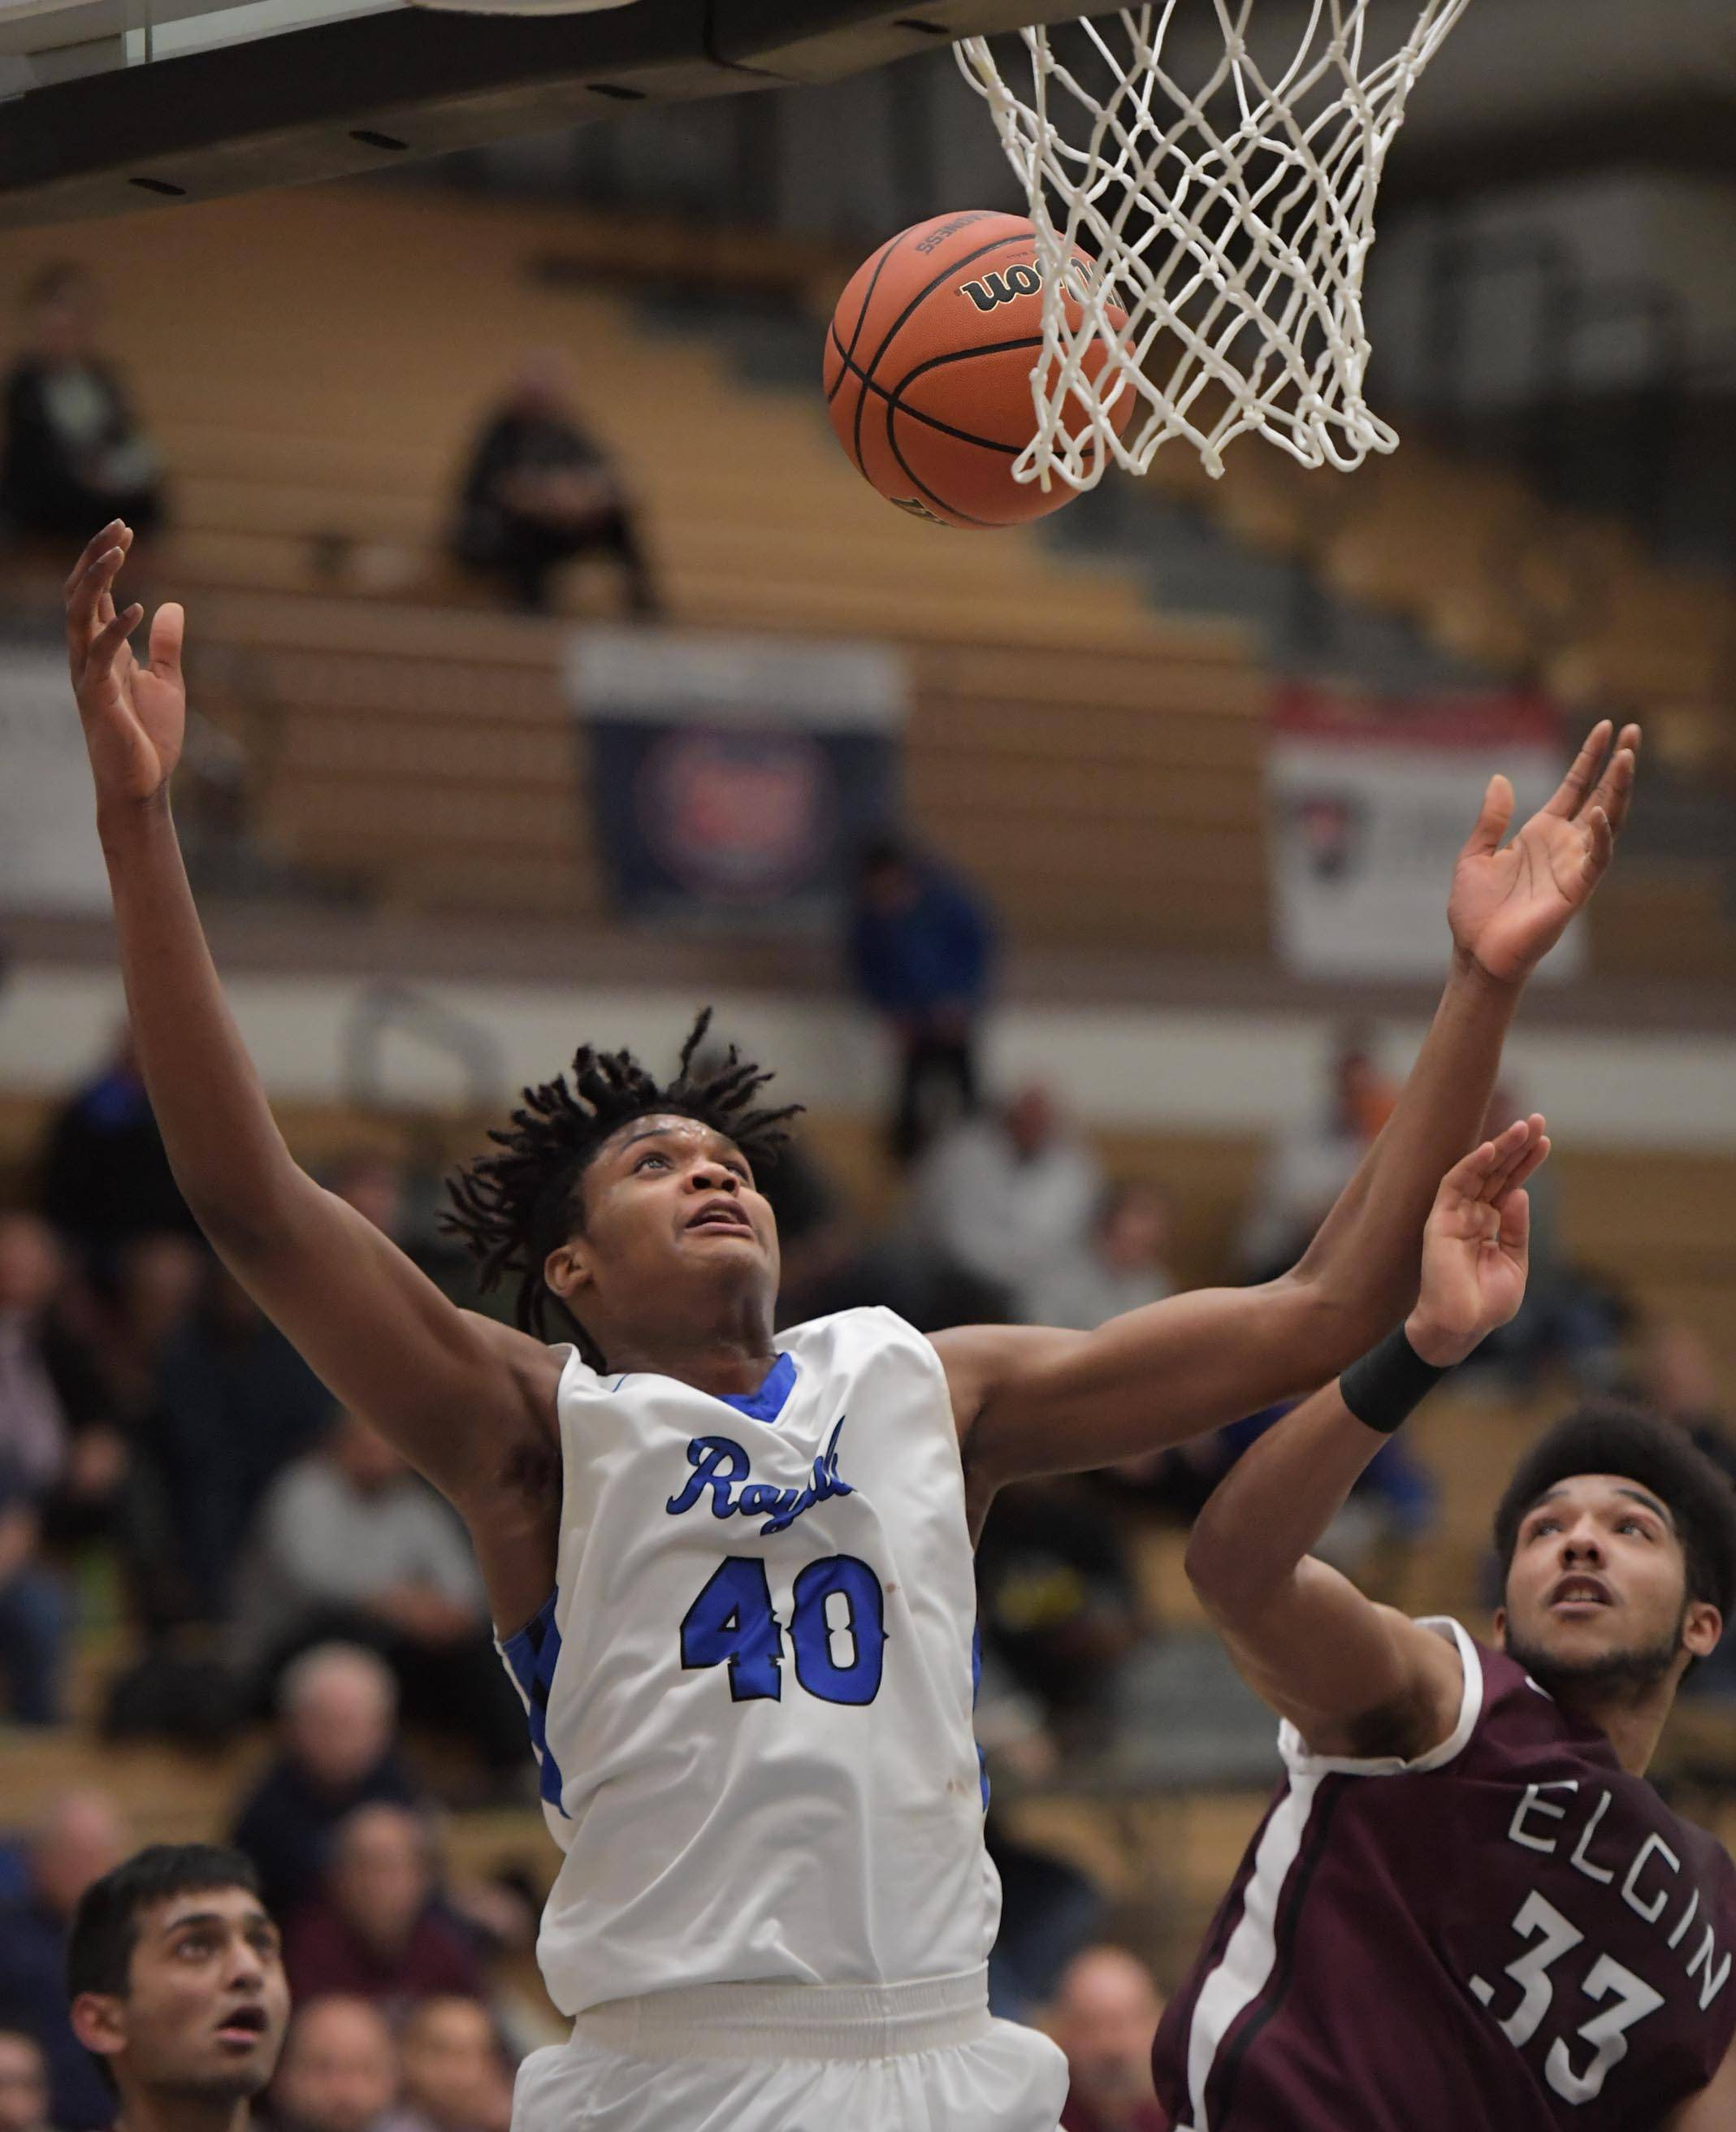 Larkin's Jalen Shaw eyes a rebound against Elgin's Roy Panthier Tuesday in the St. Charles North boys basketball regional game.